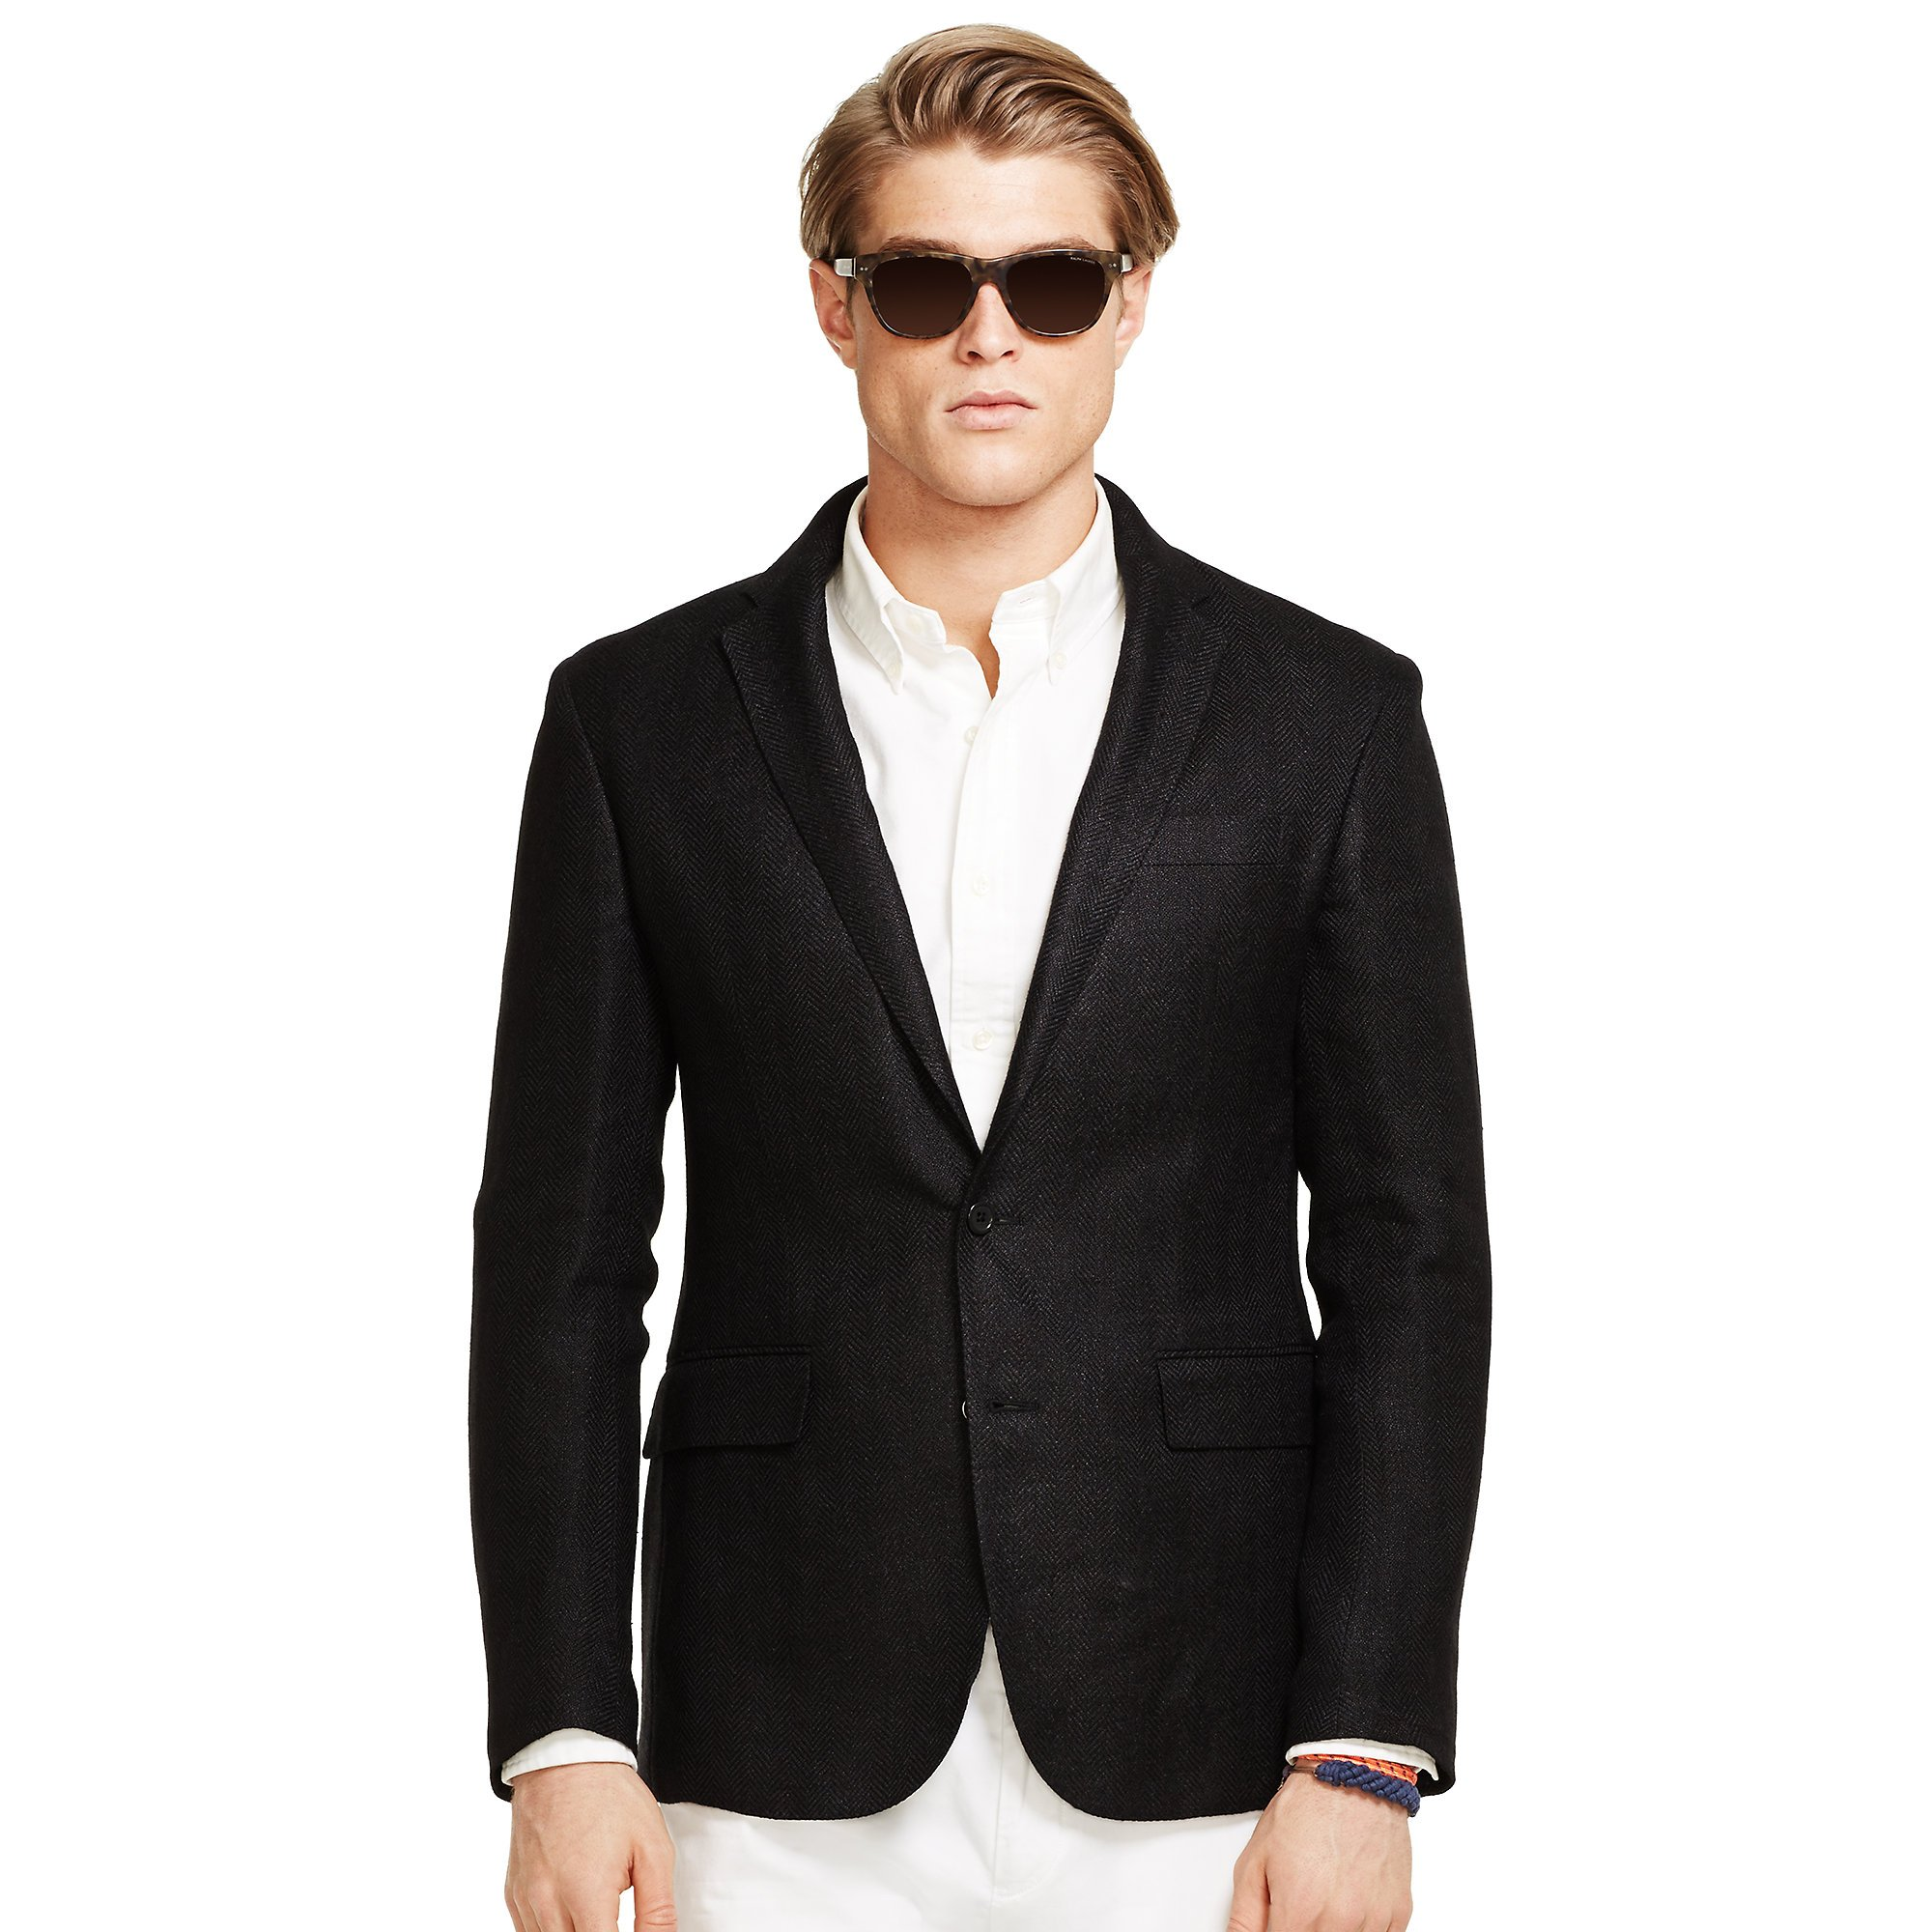 Polo ralph lauren Morgan Herringbone Sport Coat in Black | Lyst